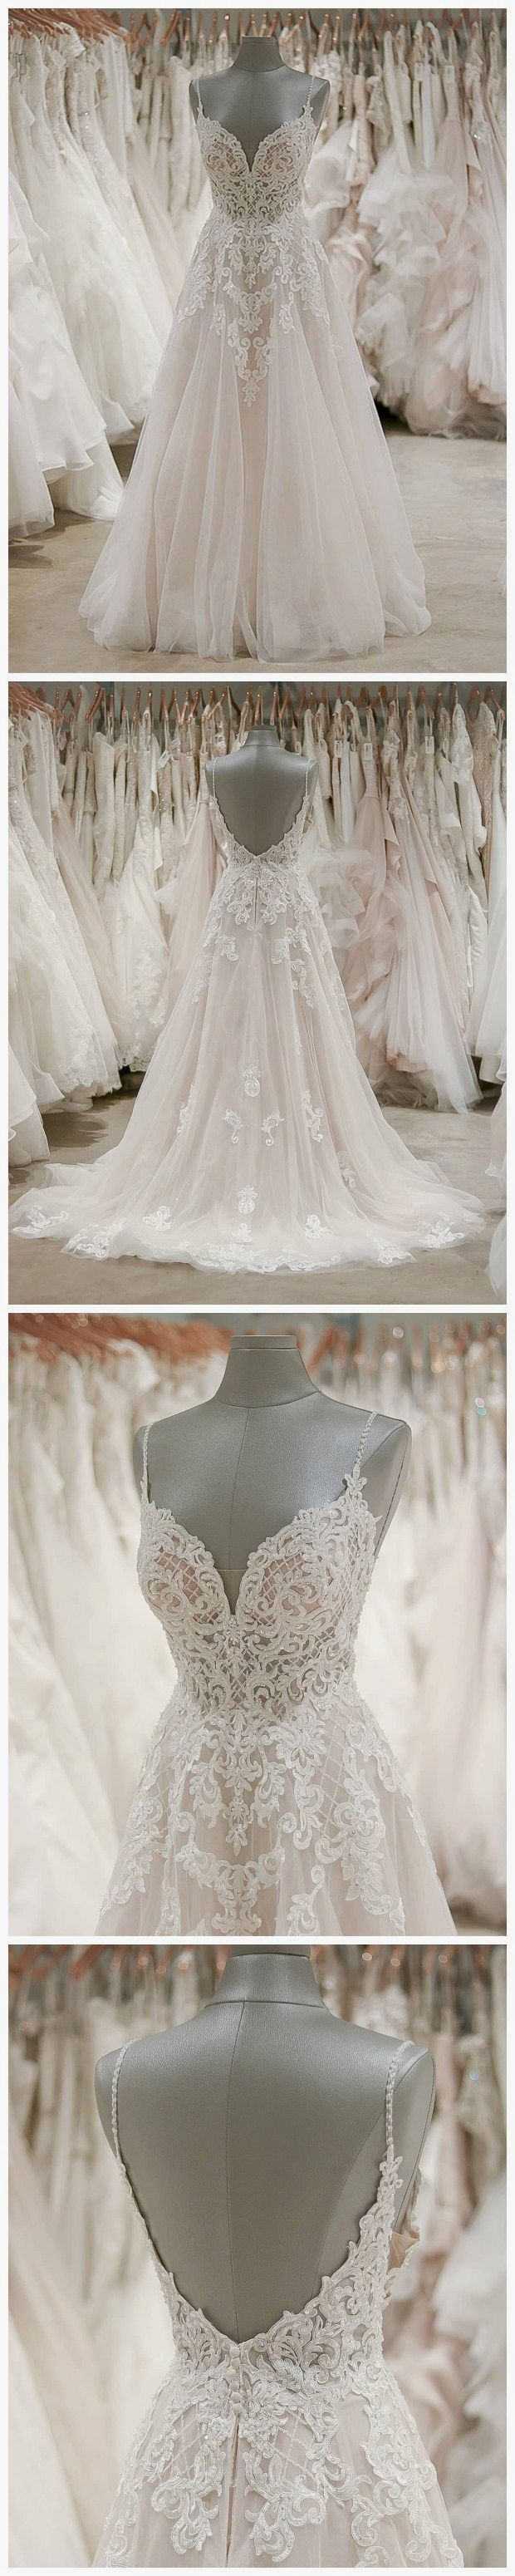 Elegant wedding dress. Forget about the soon-to-be husband, for